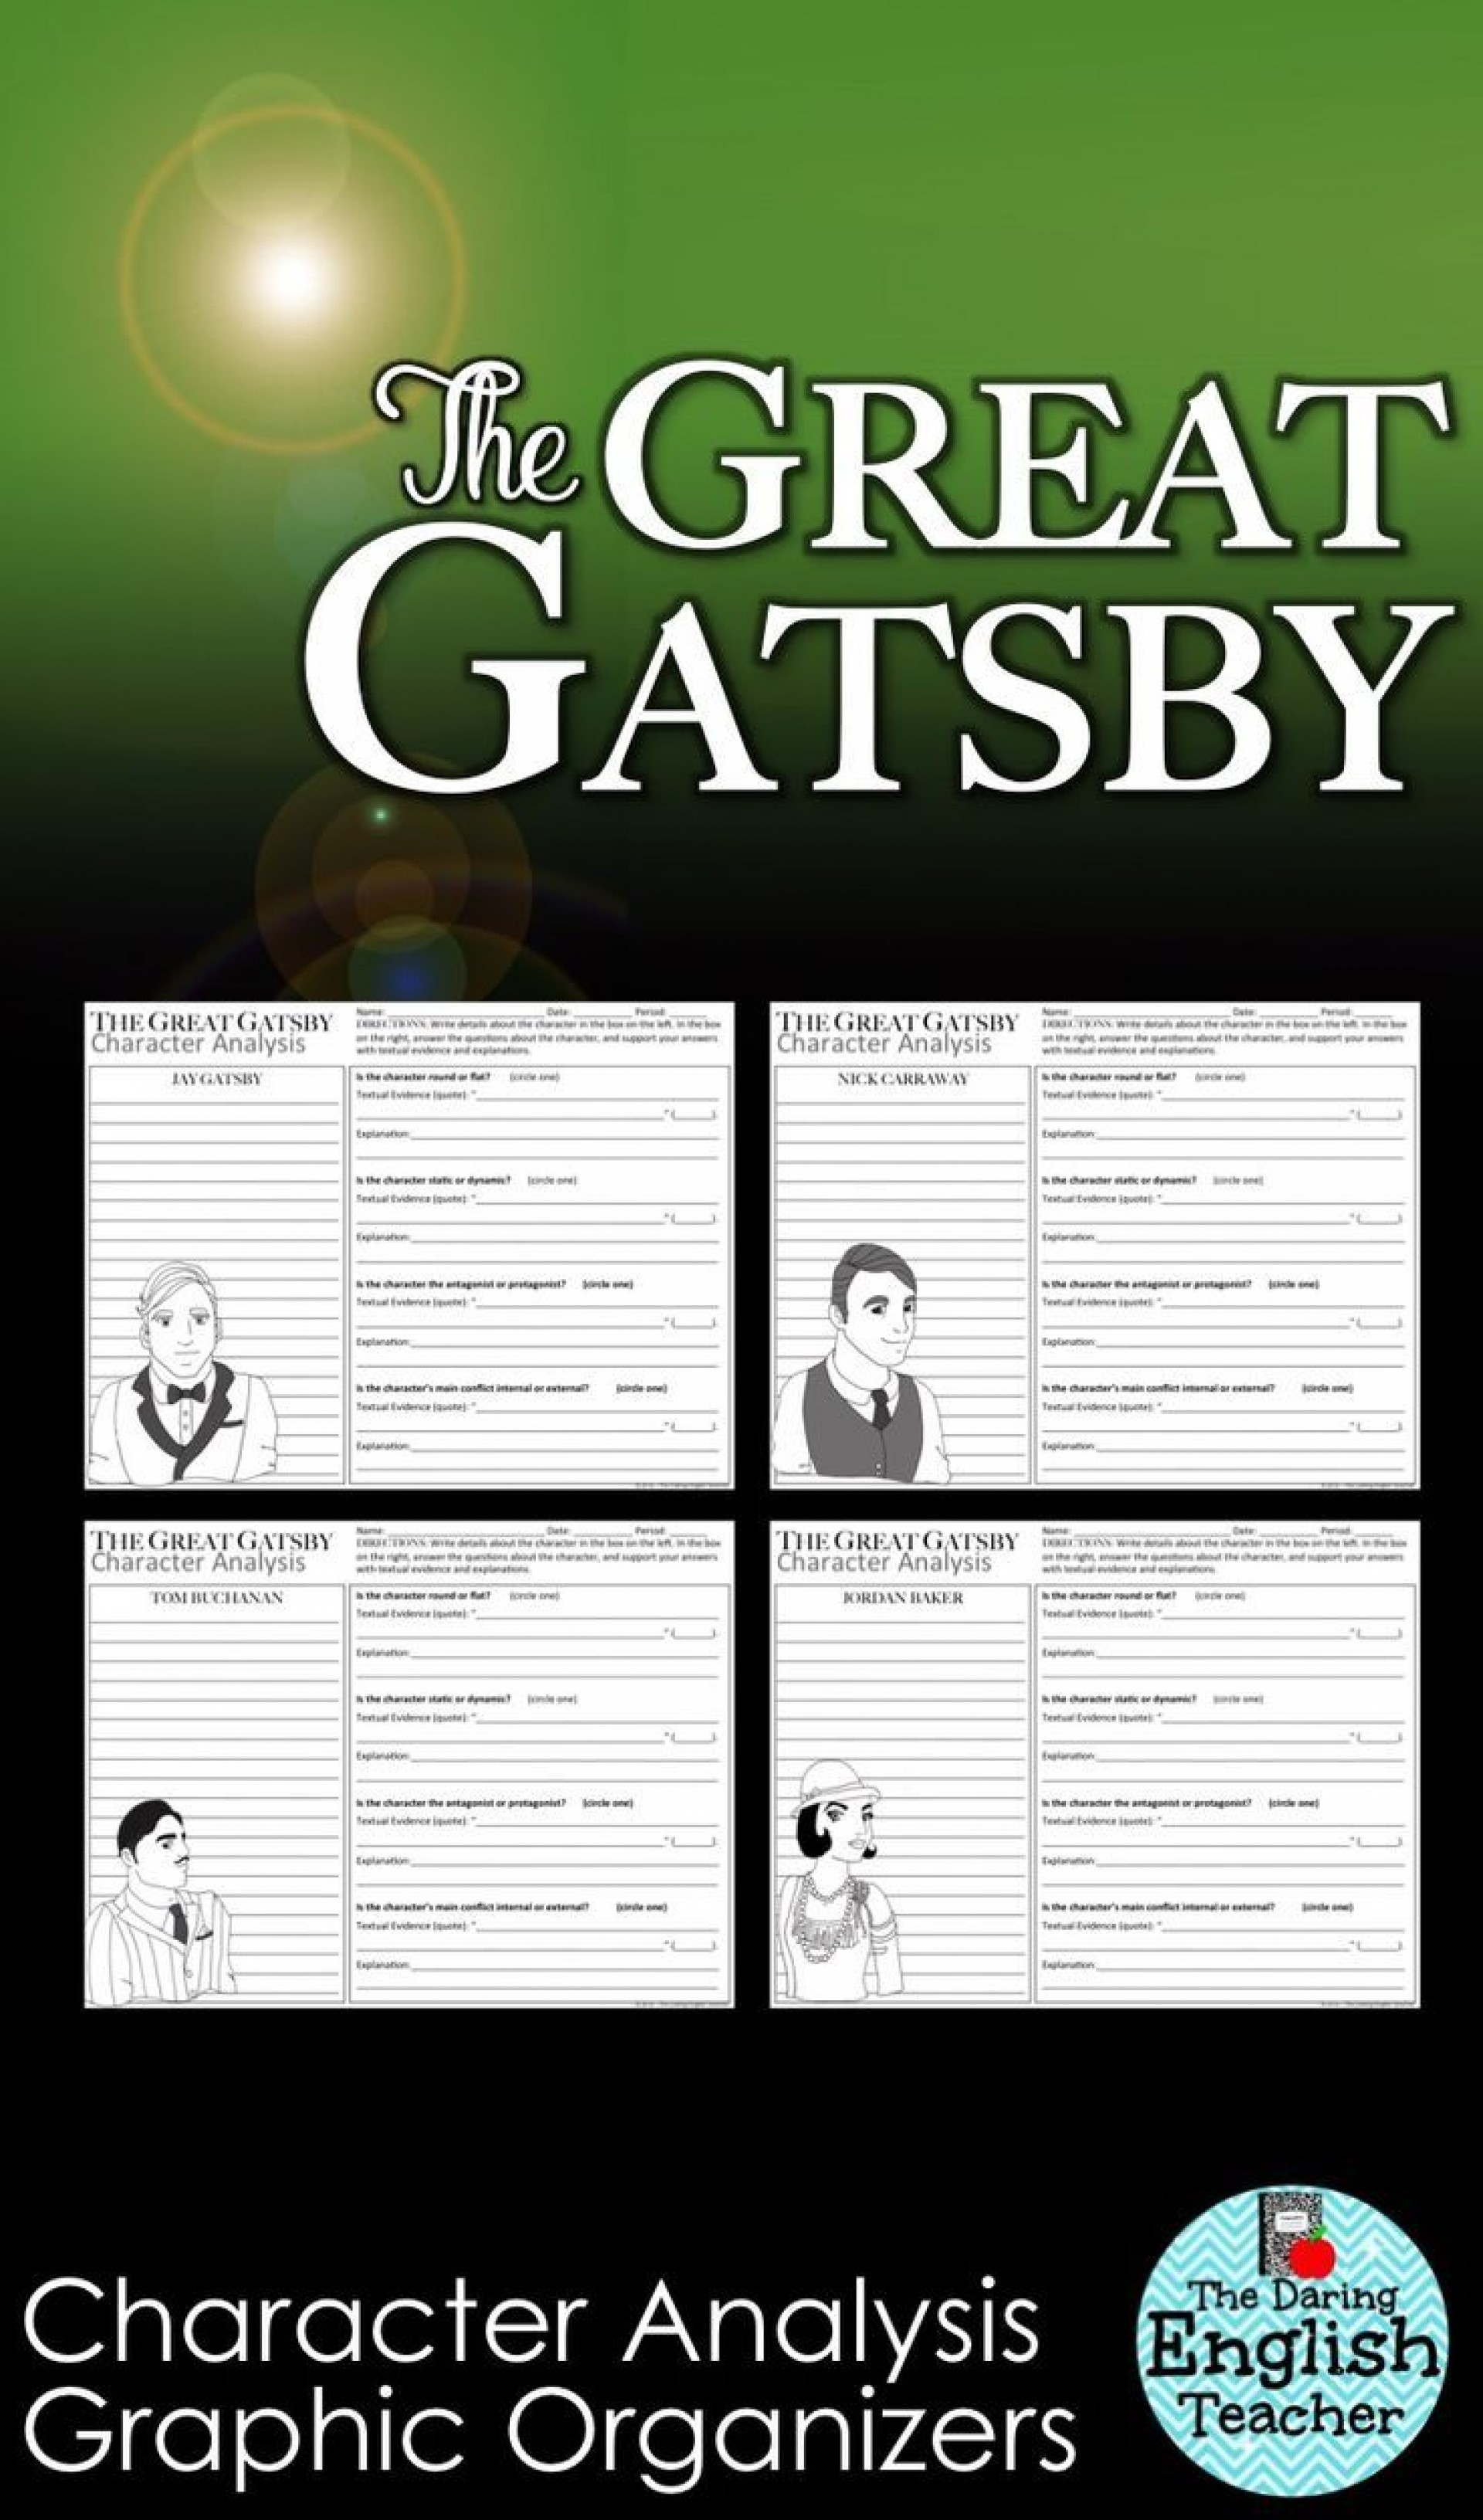 019 The Great Gatsby Essay Topics Example Exceptional Literary Question Chapter 1 1920